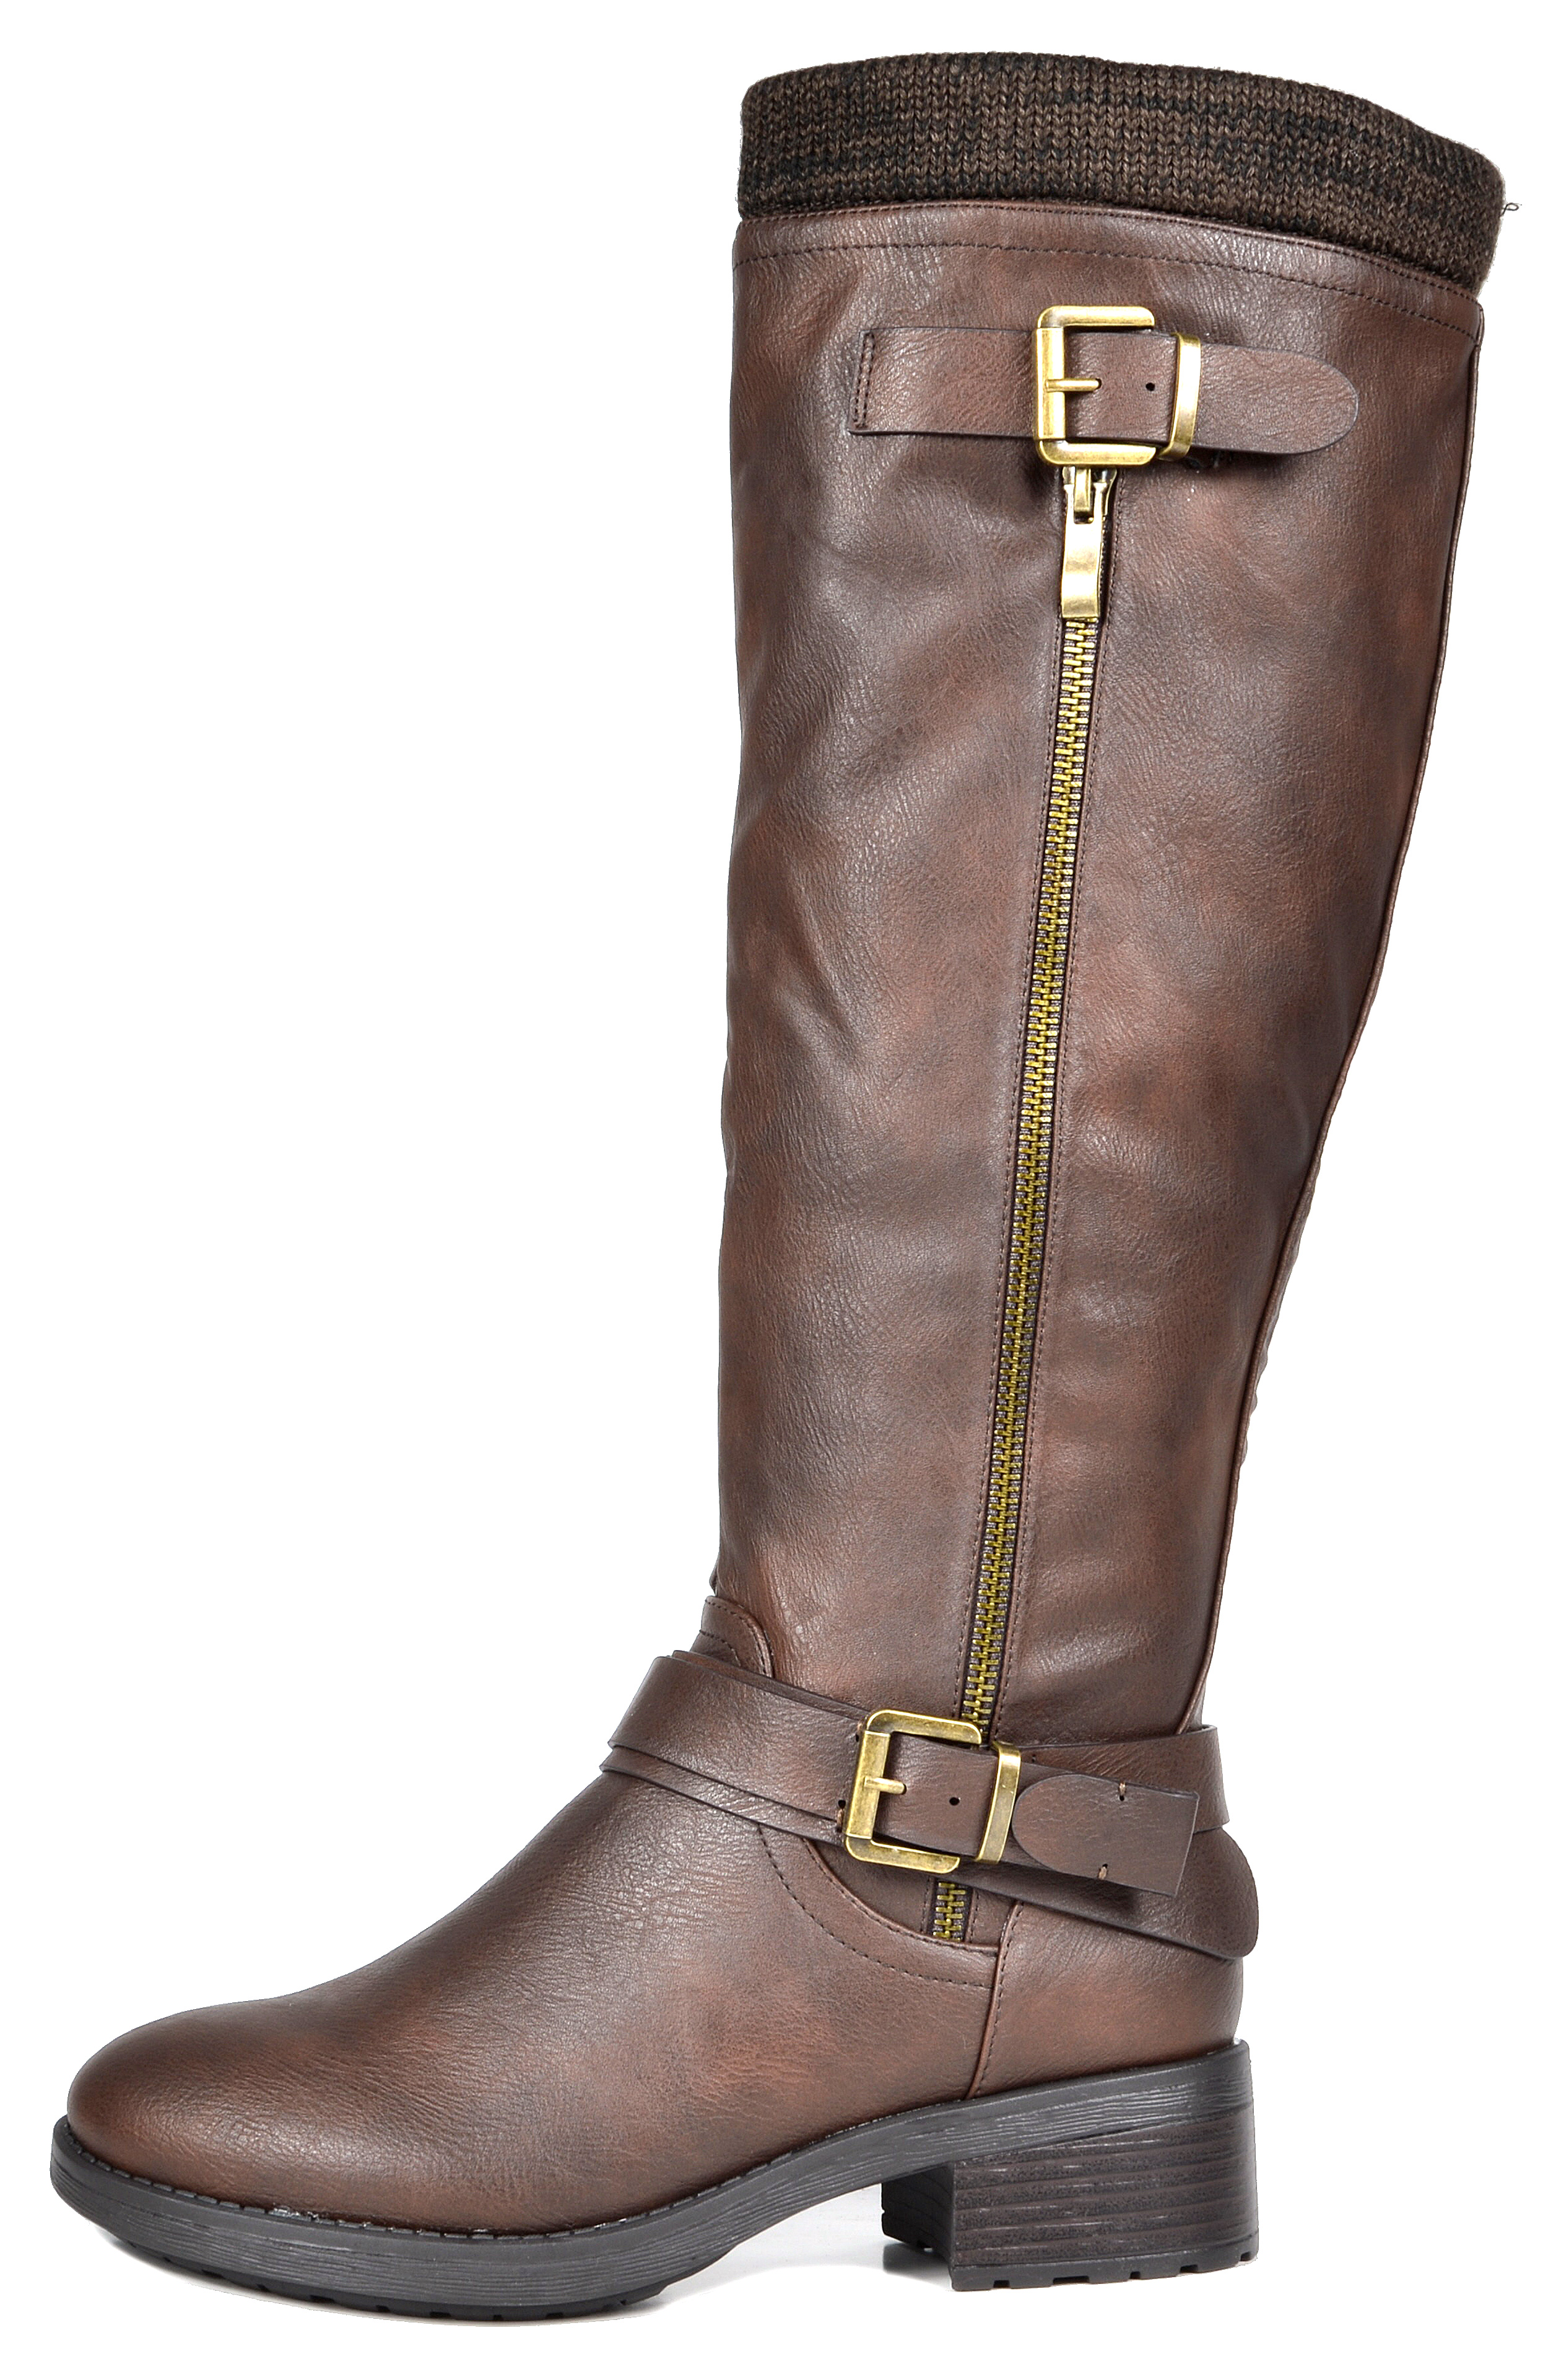 ebdec8f2a3c DREAM PAIRS Women s Knee High Riding Boots Zipper easy on(Wide-Calf ...